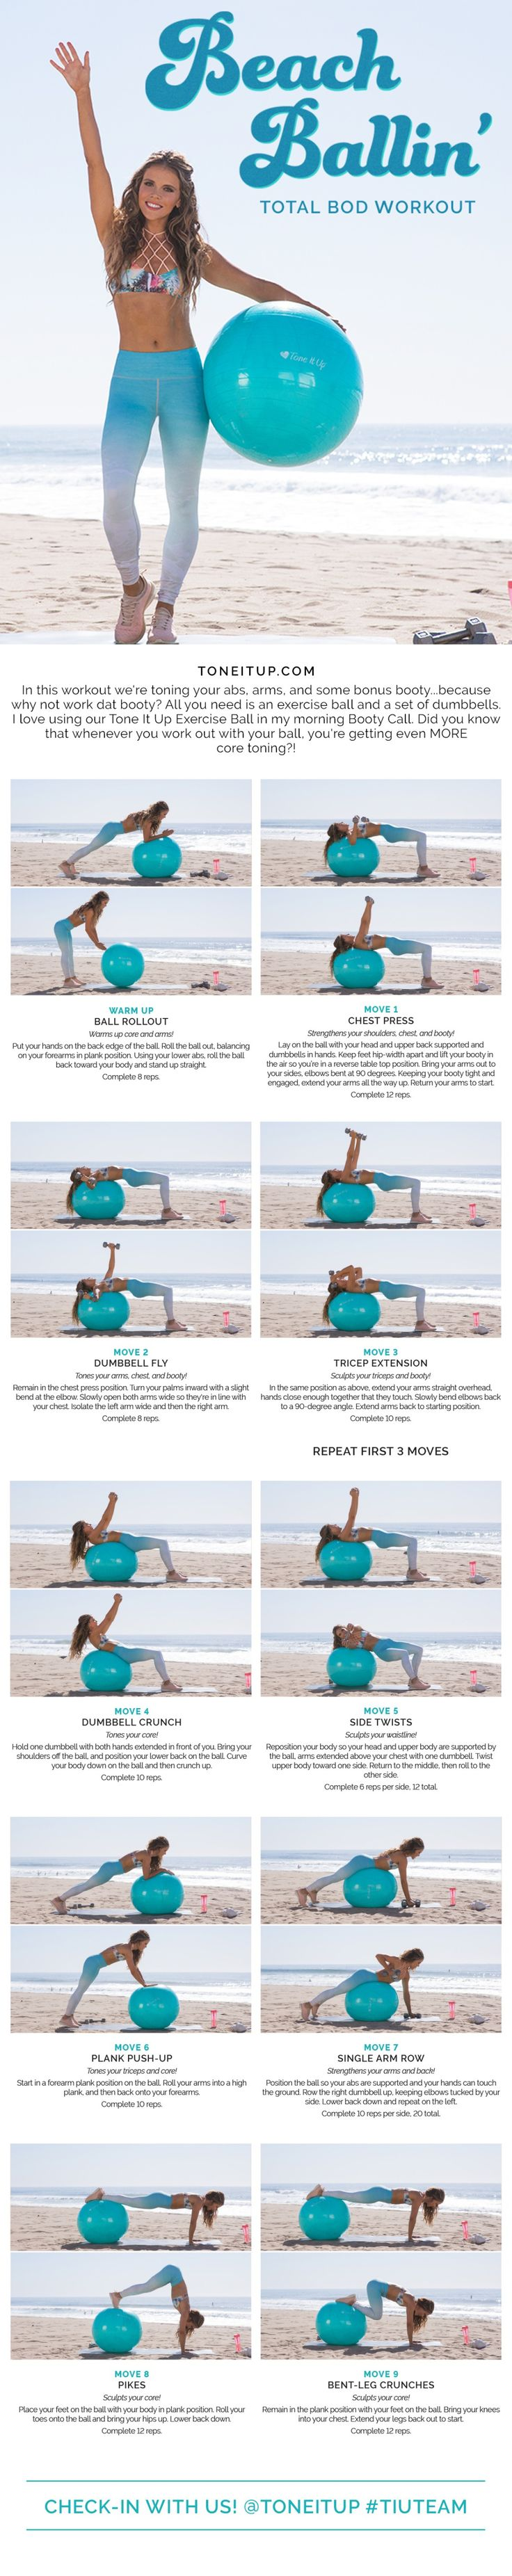 Beach Ballin' Total Body Workout! We're toning your abs, arms, and some bonus booty…because why not work dat booty? ;) full body workout routine * fitness motivation * boost metabolism * burn fat * (Burn Fat)